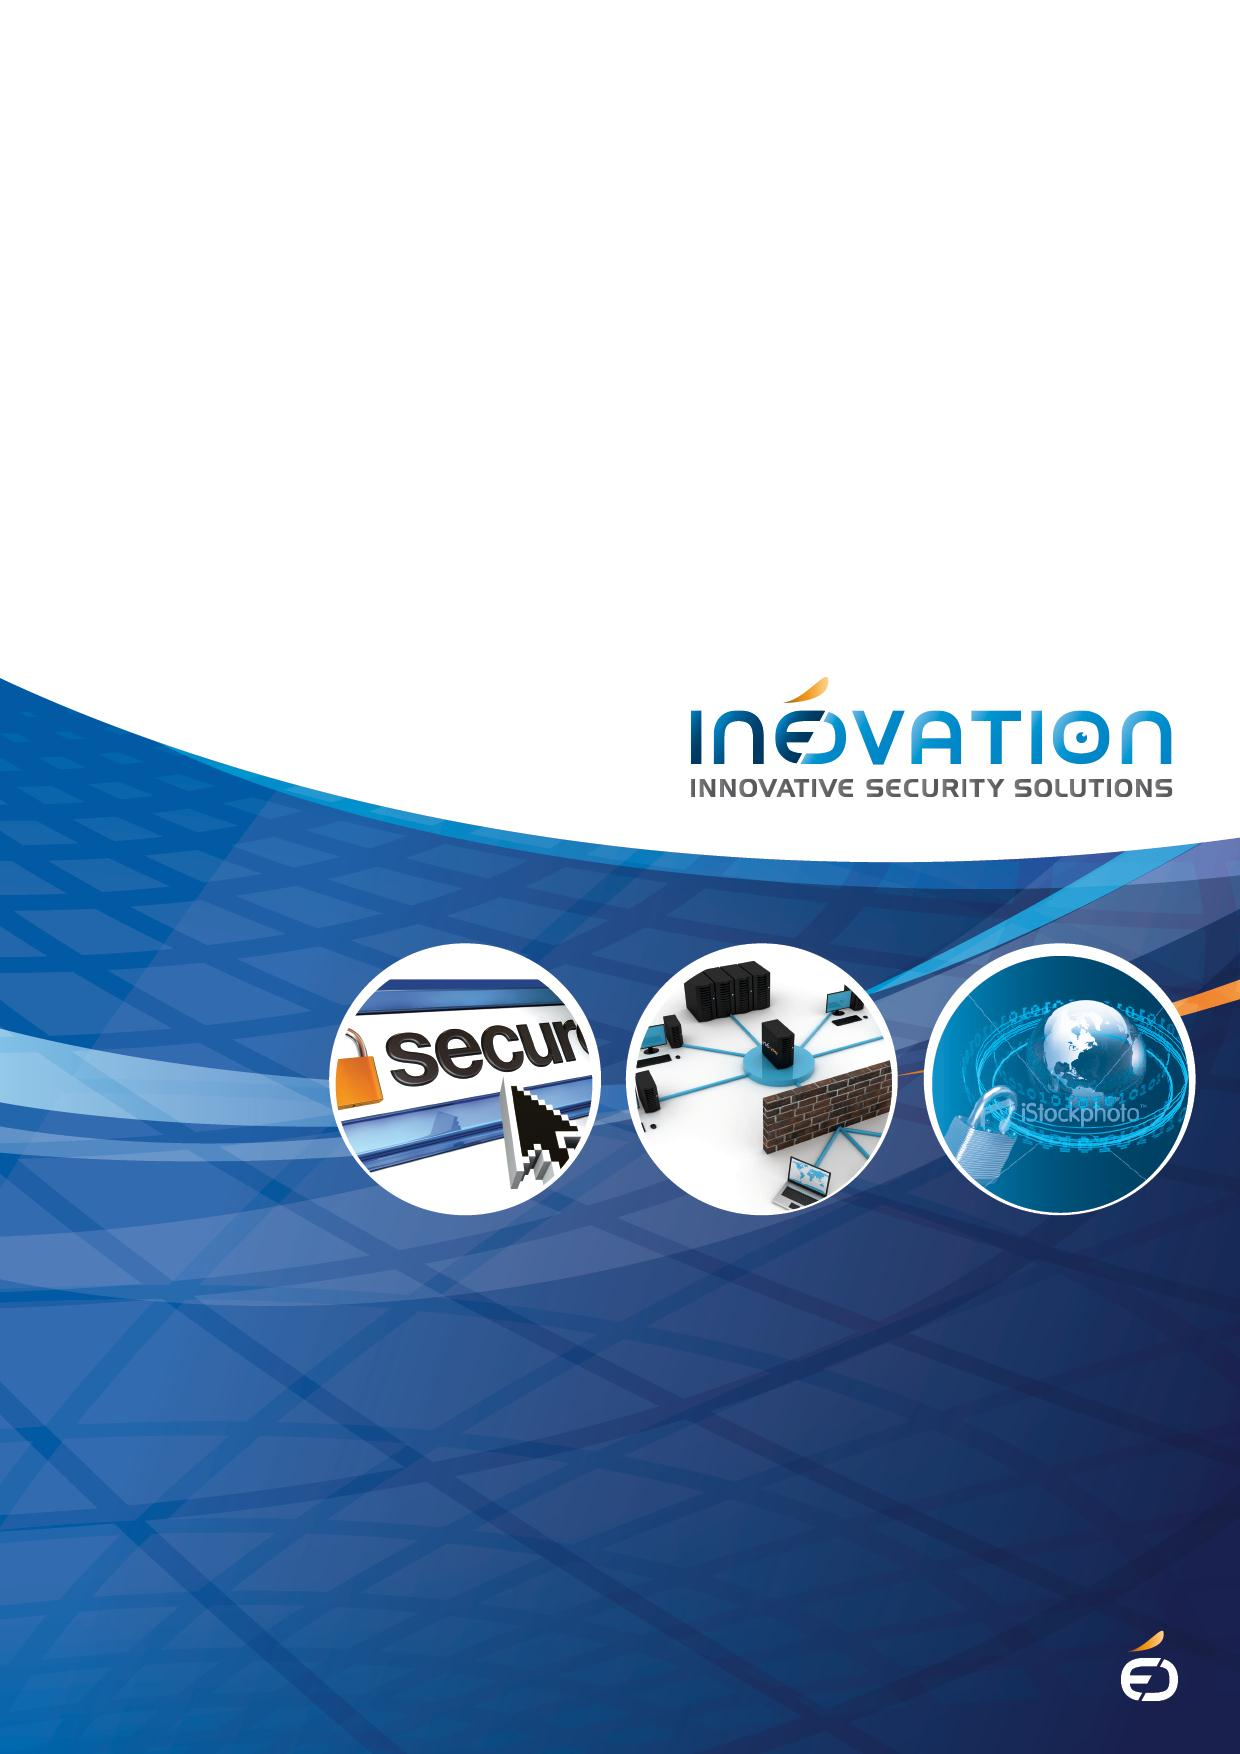 PROGRAMME PARTENAIRE INEOVATION (PPI) Secure Remote Access